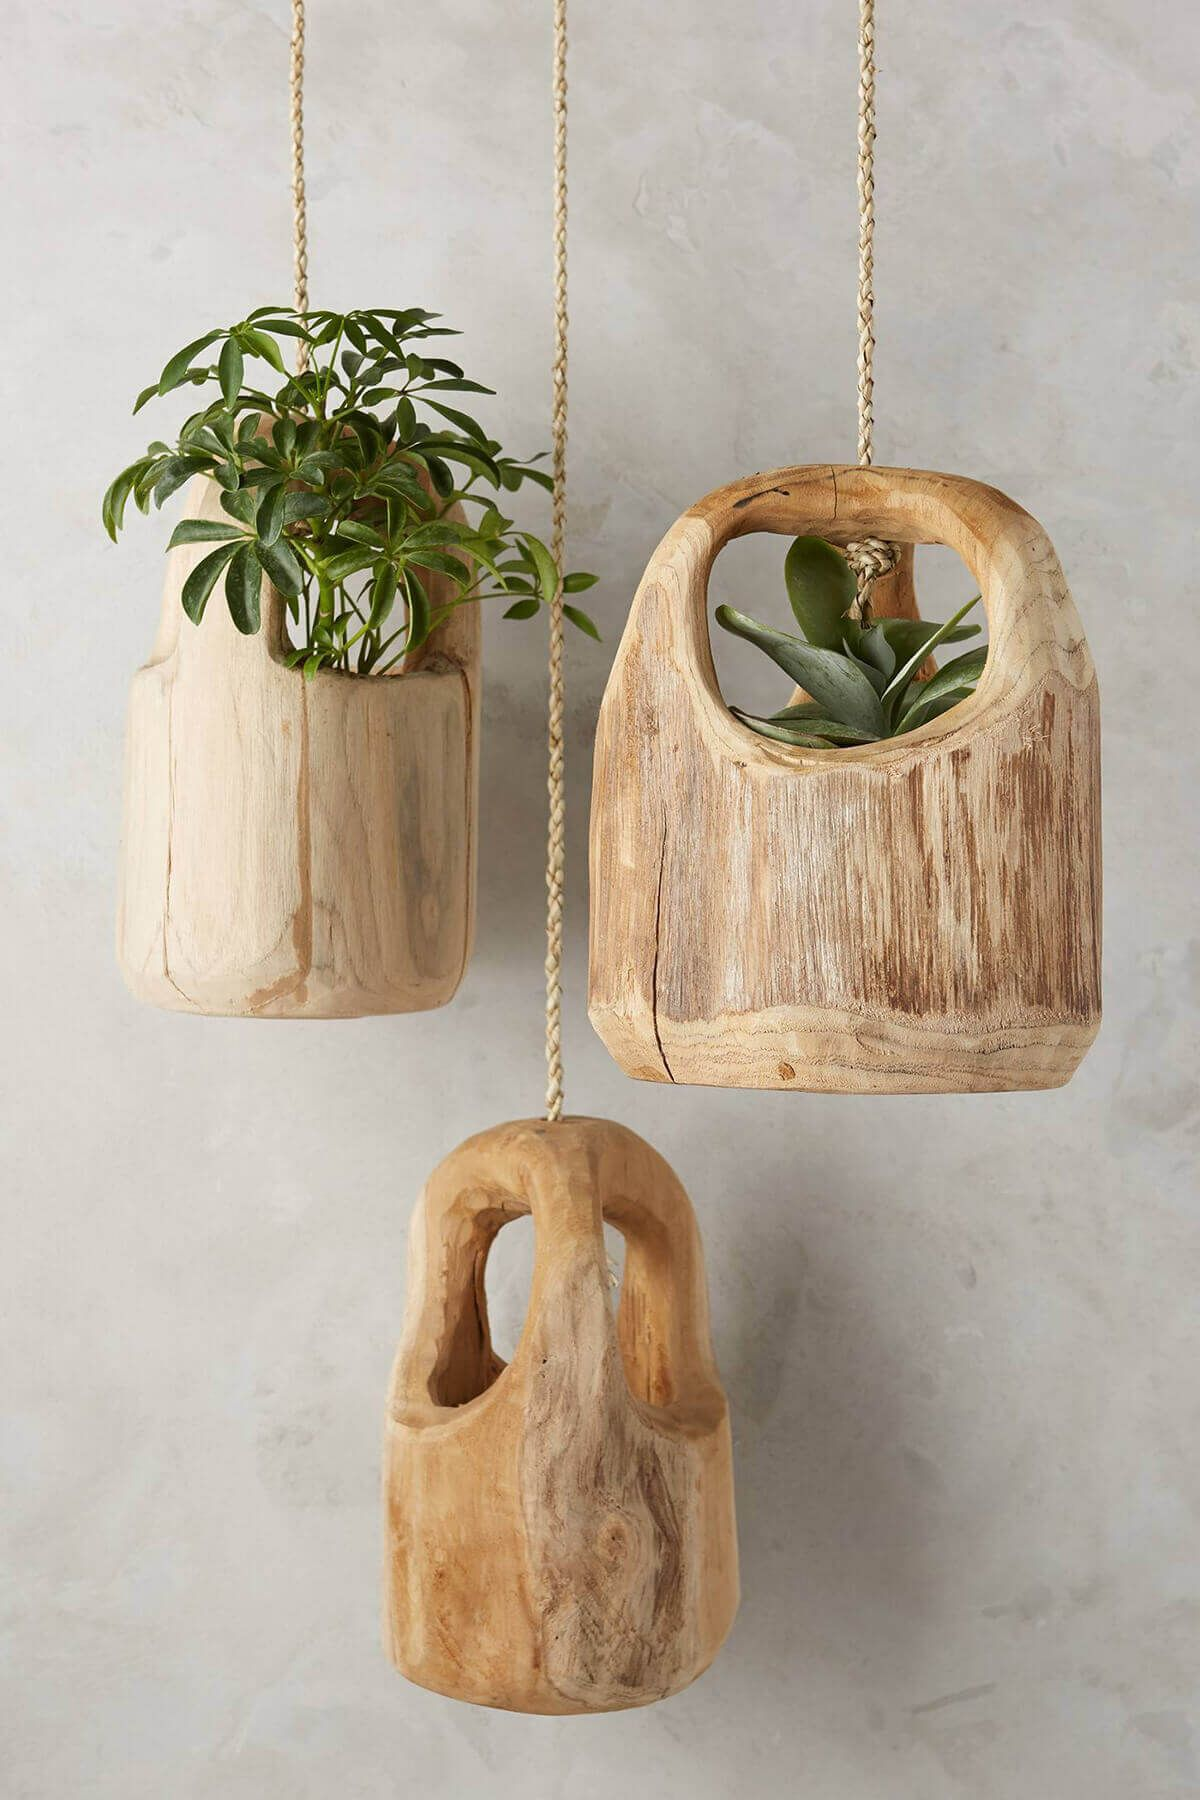 45 Charming Outdoor Hanging Planter Ideas To Brighten Your Yard Hanging Planters Indoor Diy Hanging Planter Diy Planters